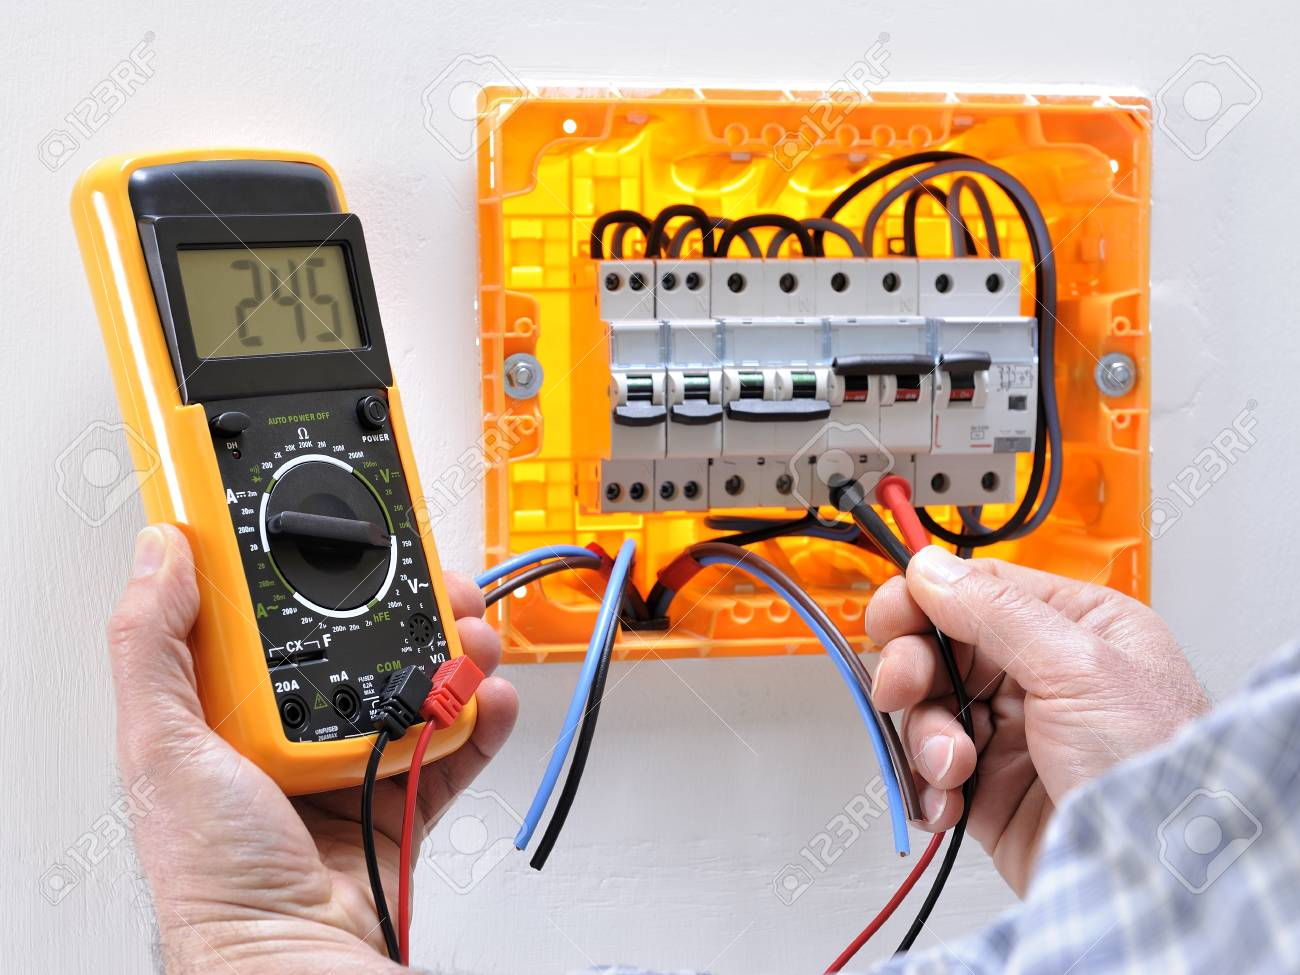 Circuit Breaker House Panel Electrician Technician Working On A Residential Electrical Measures The Voltage Terminals Of